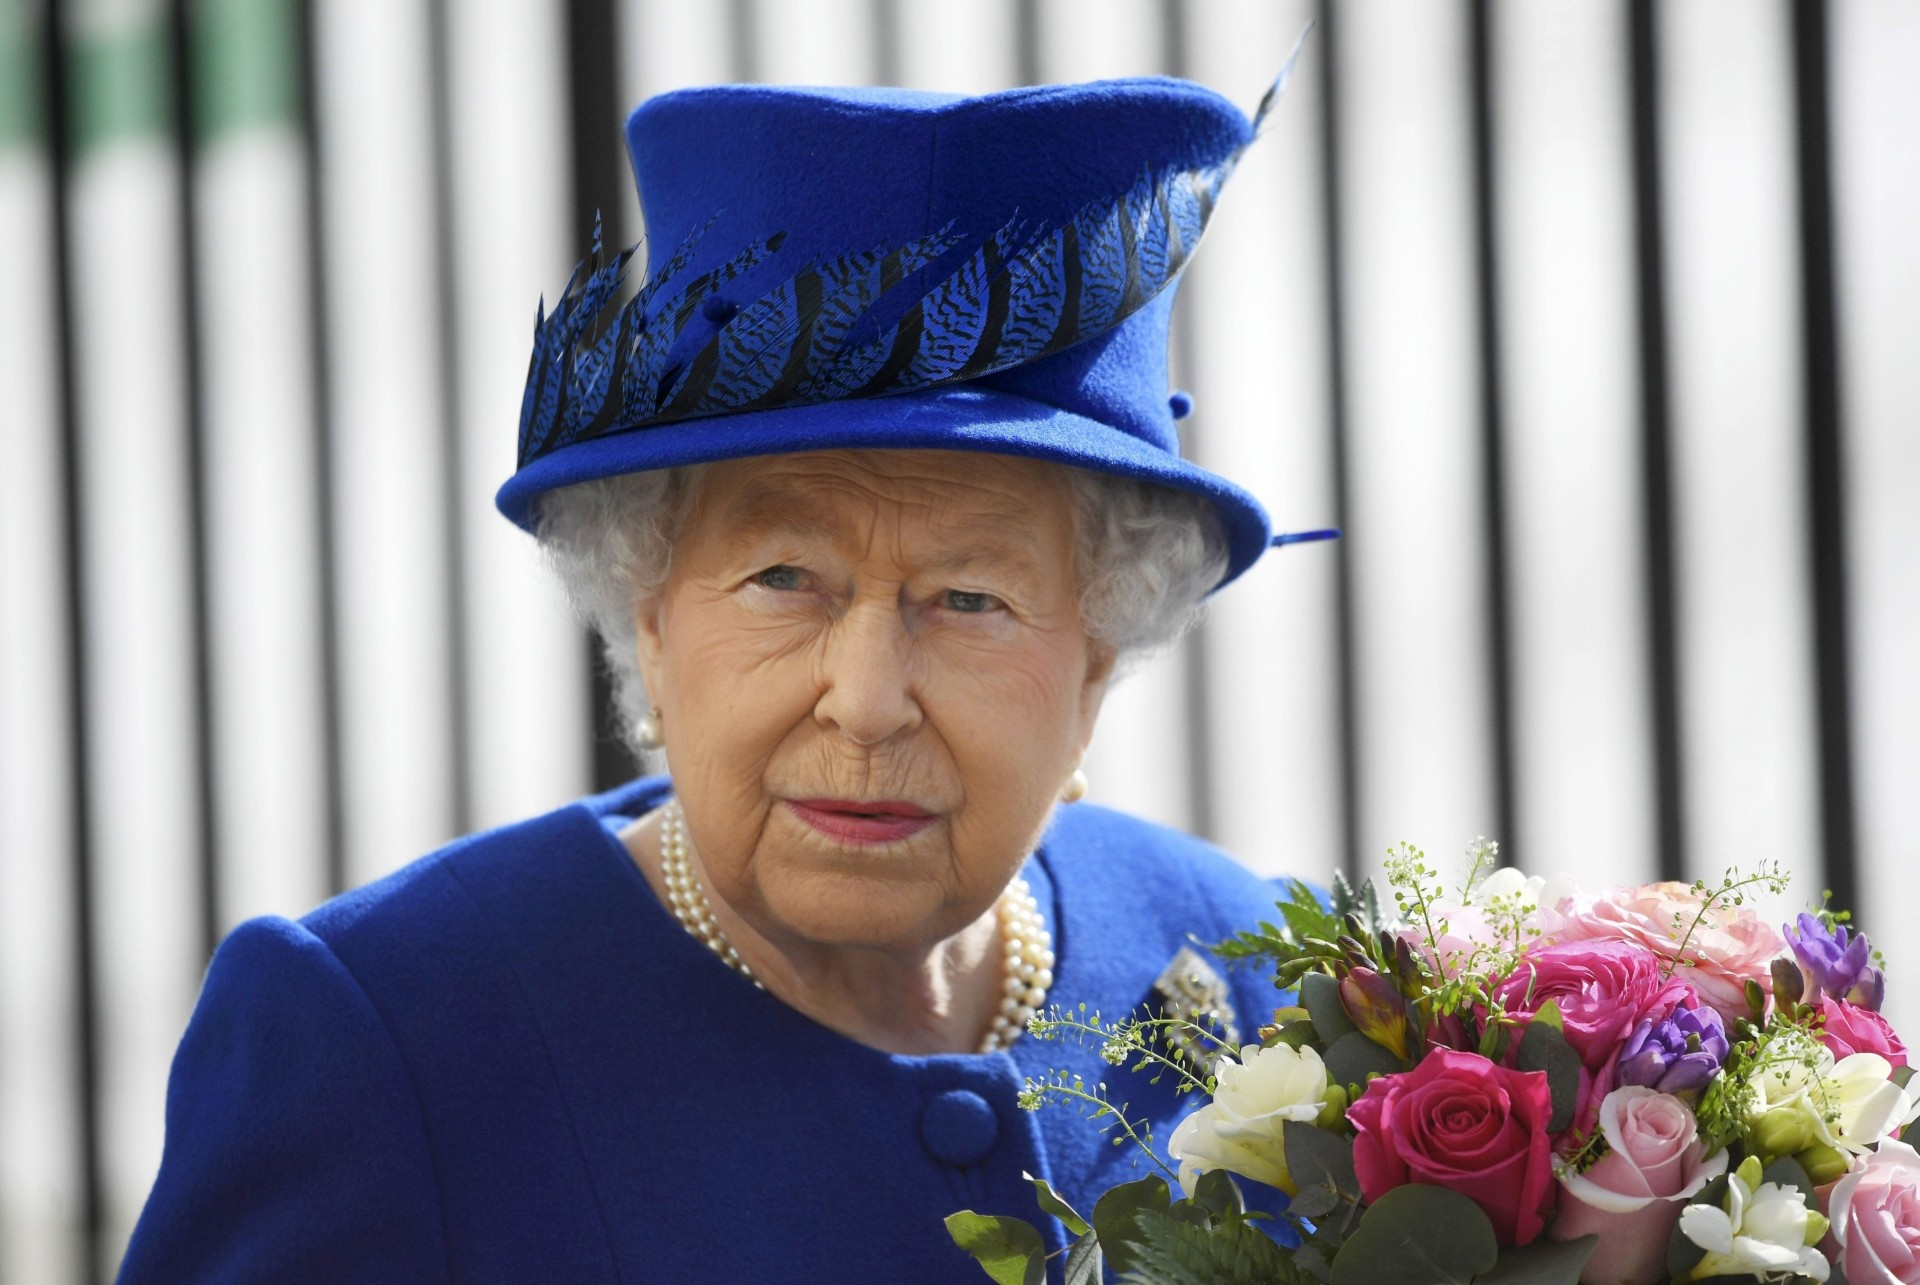 This is the plan in place for when the Queen passes away